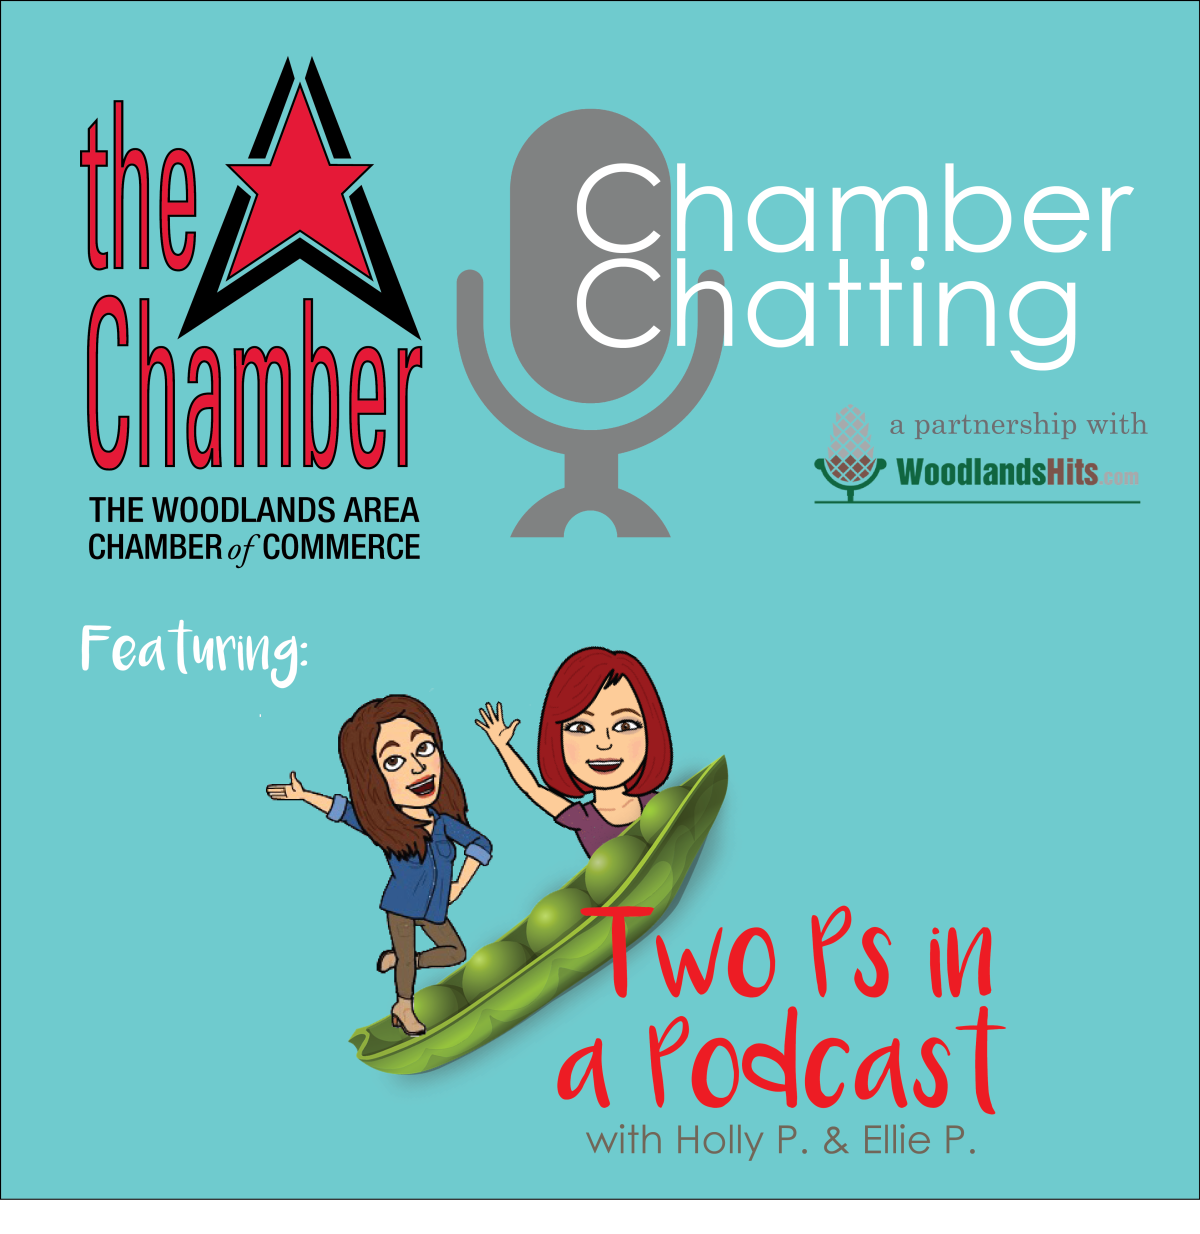 Chamber Chatting Two Ps ina Podcast